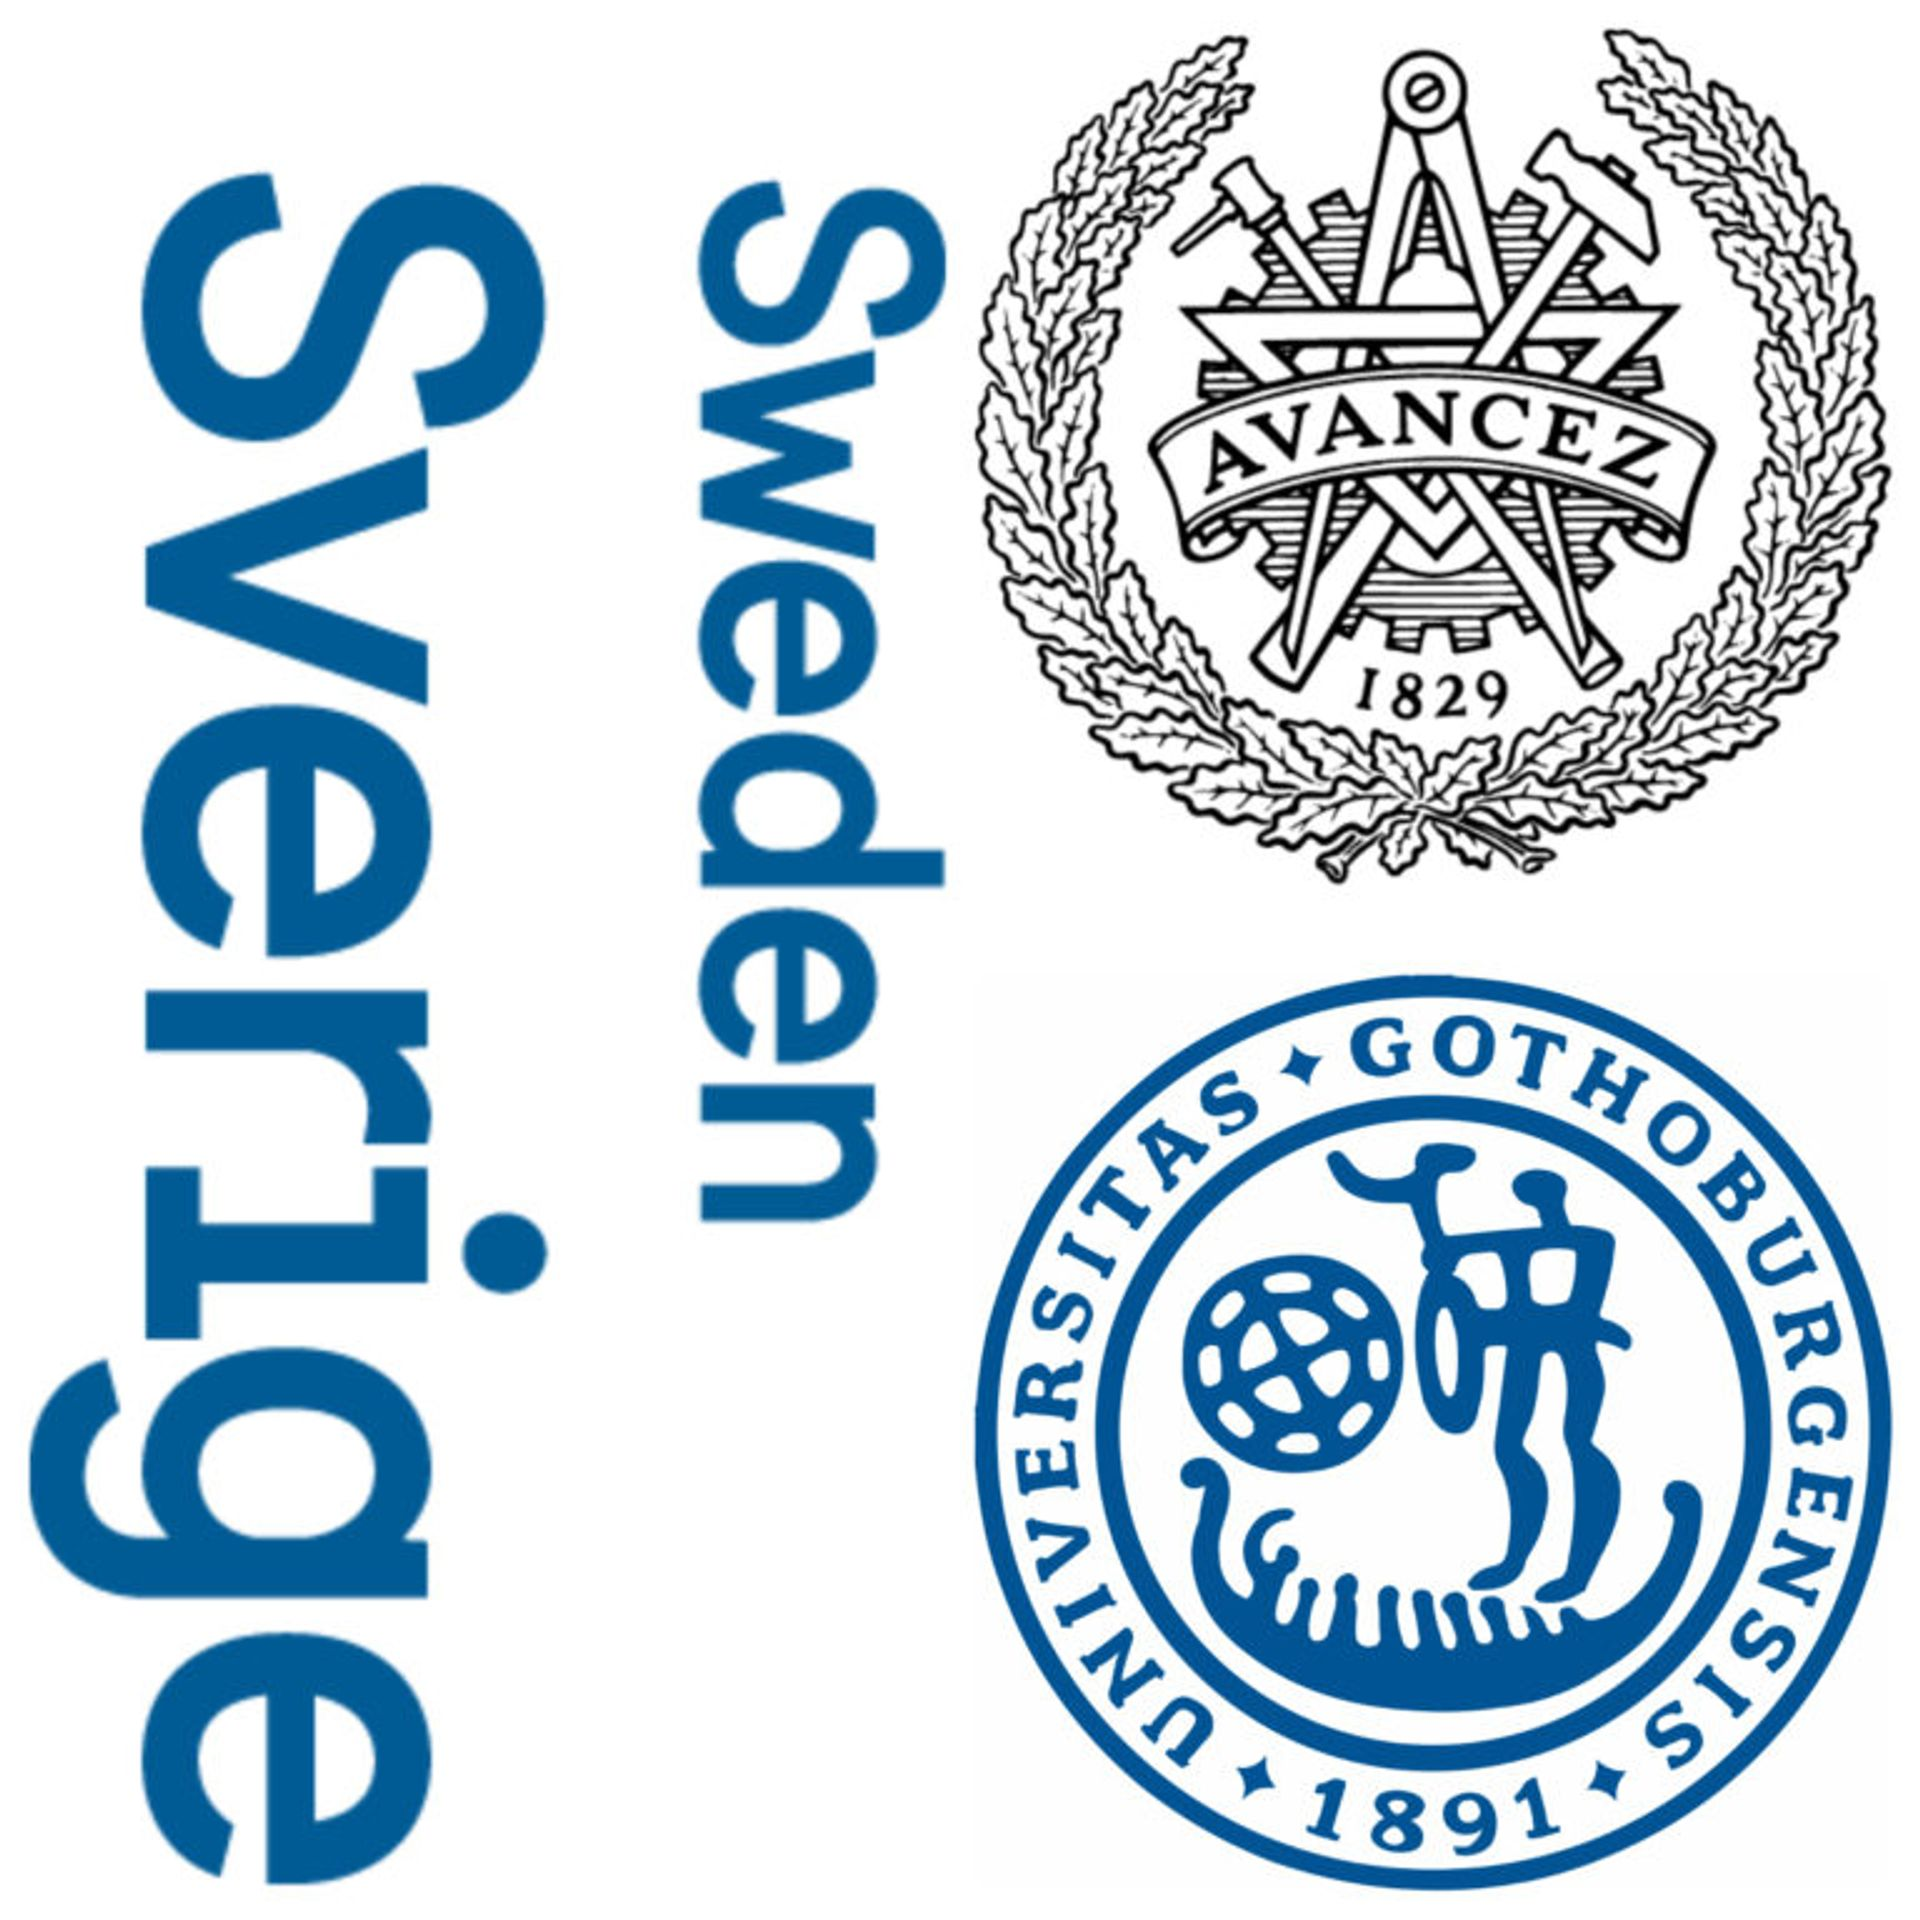 Logos of Sweden, Chalmers University of Technology and the University of Gothenburg.